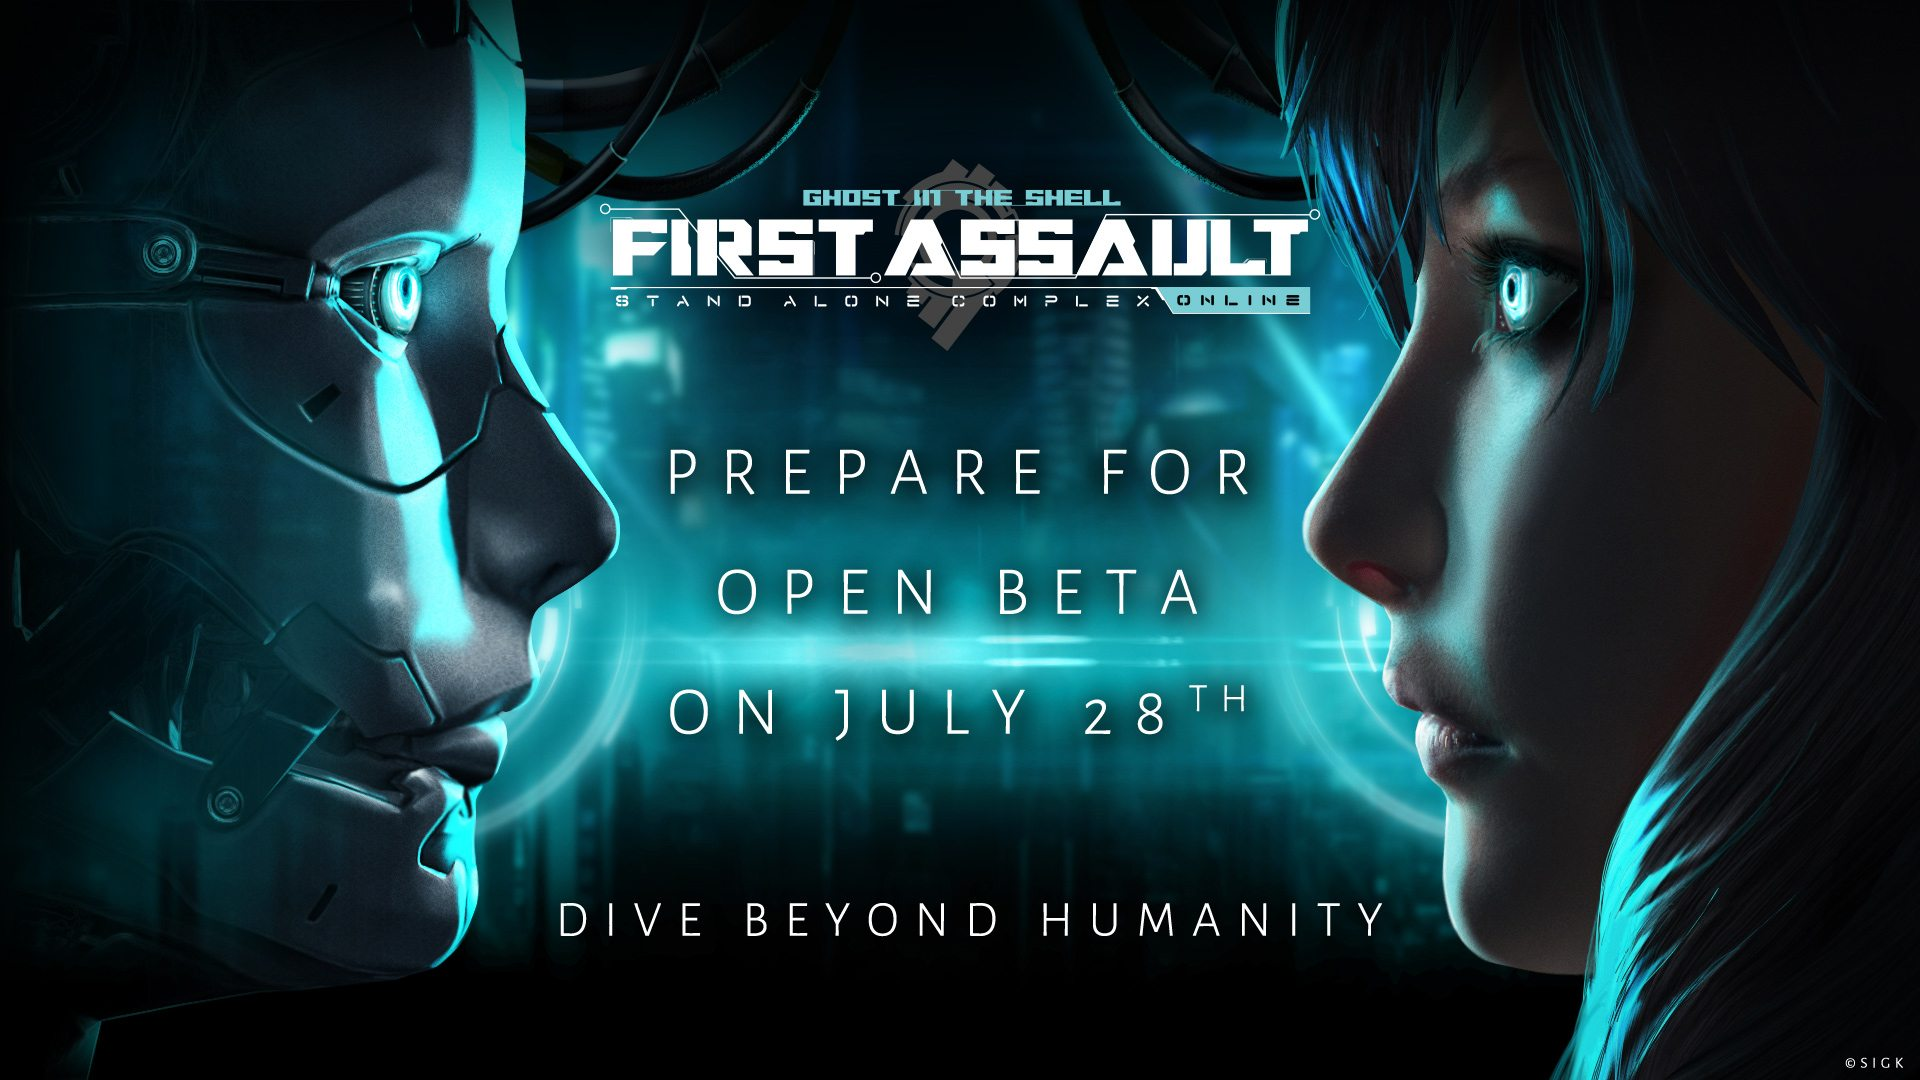 FIRST ASSAULT Free-to-Play Open Beta Starts July 28